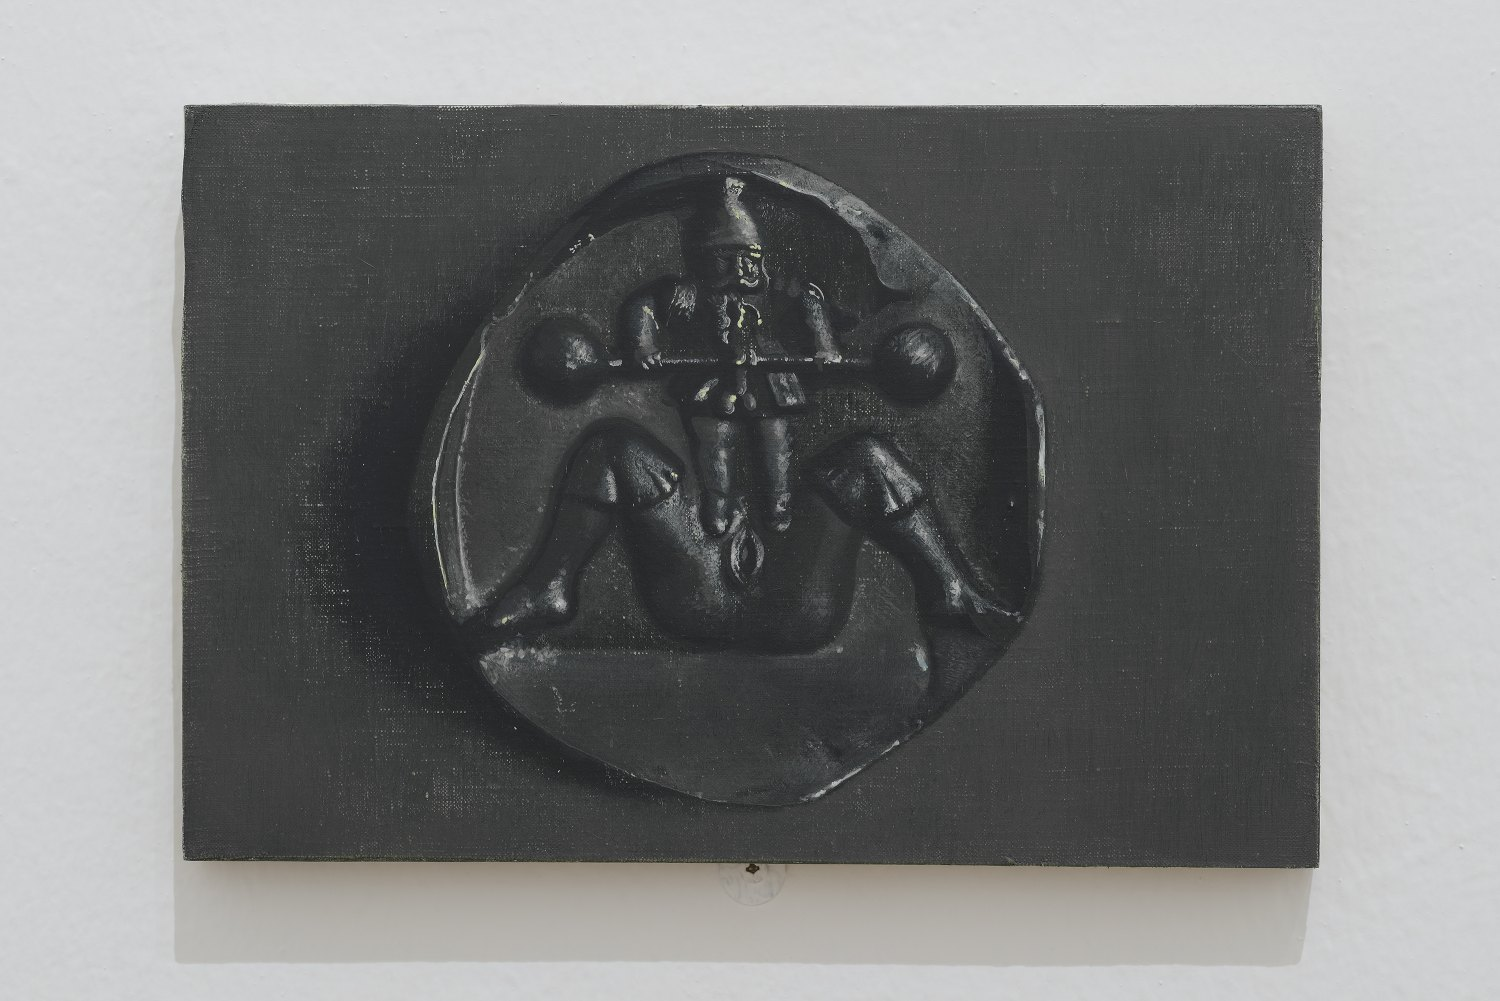 Victor Man Untitled, 2013 Oil on linen mounted on wood, 18 × 27 cm